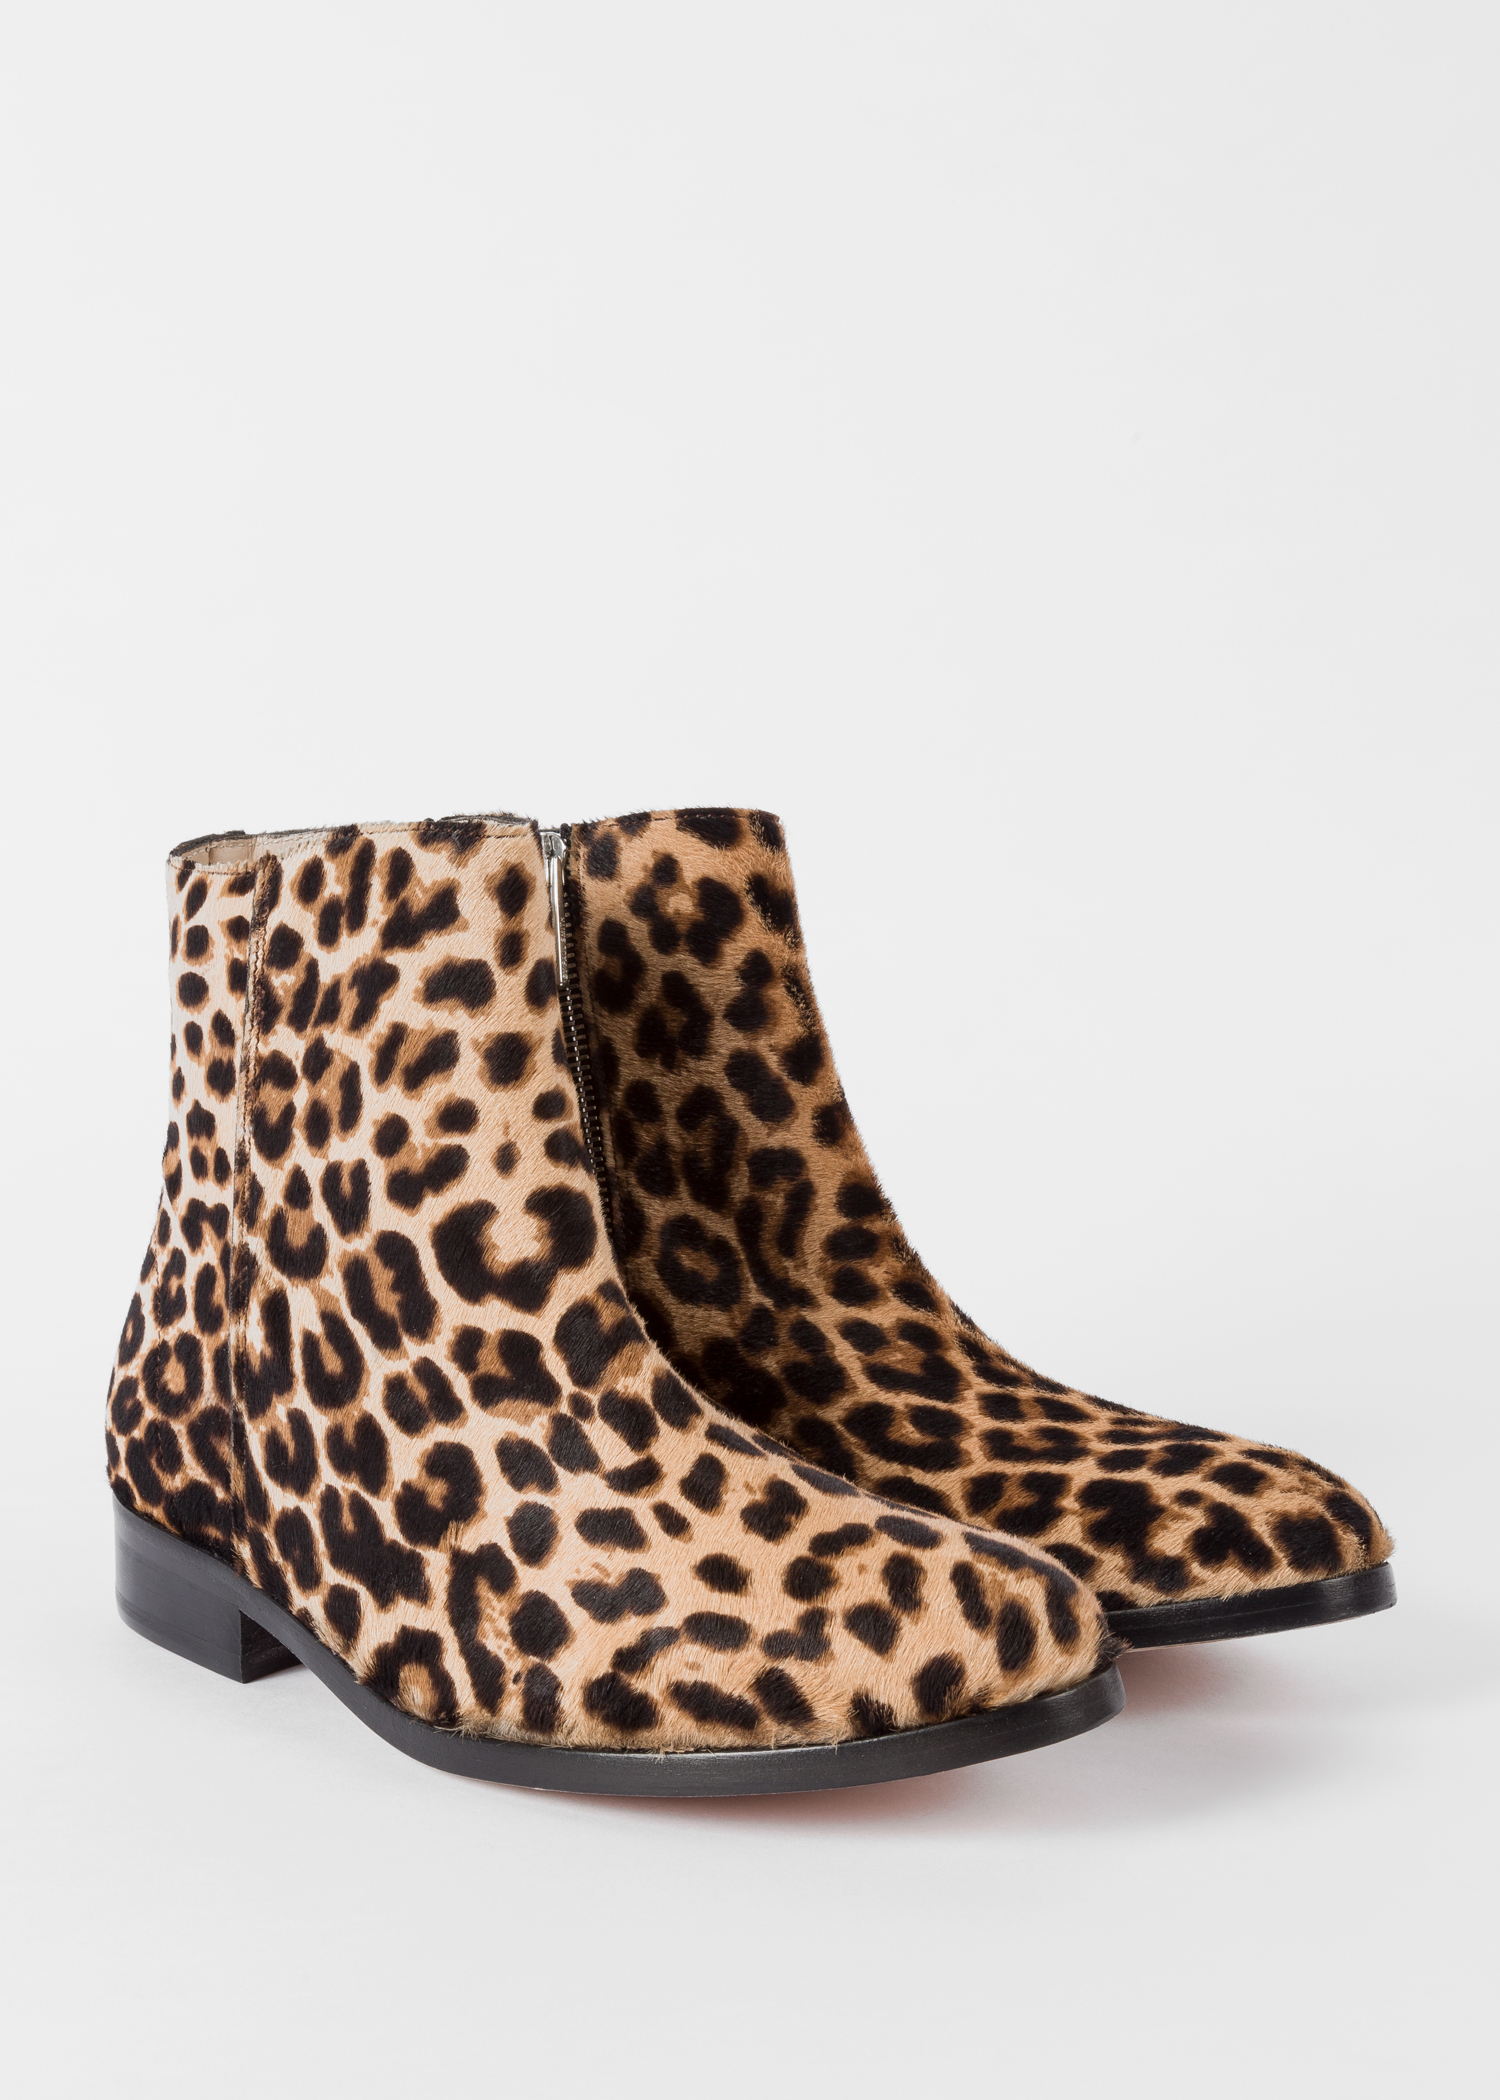 36f2f49e86cf Angled view- Women's Beige Leopard Print 'Brooklyn' Leather Boots Paul Smith